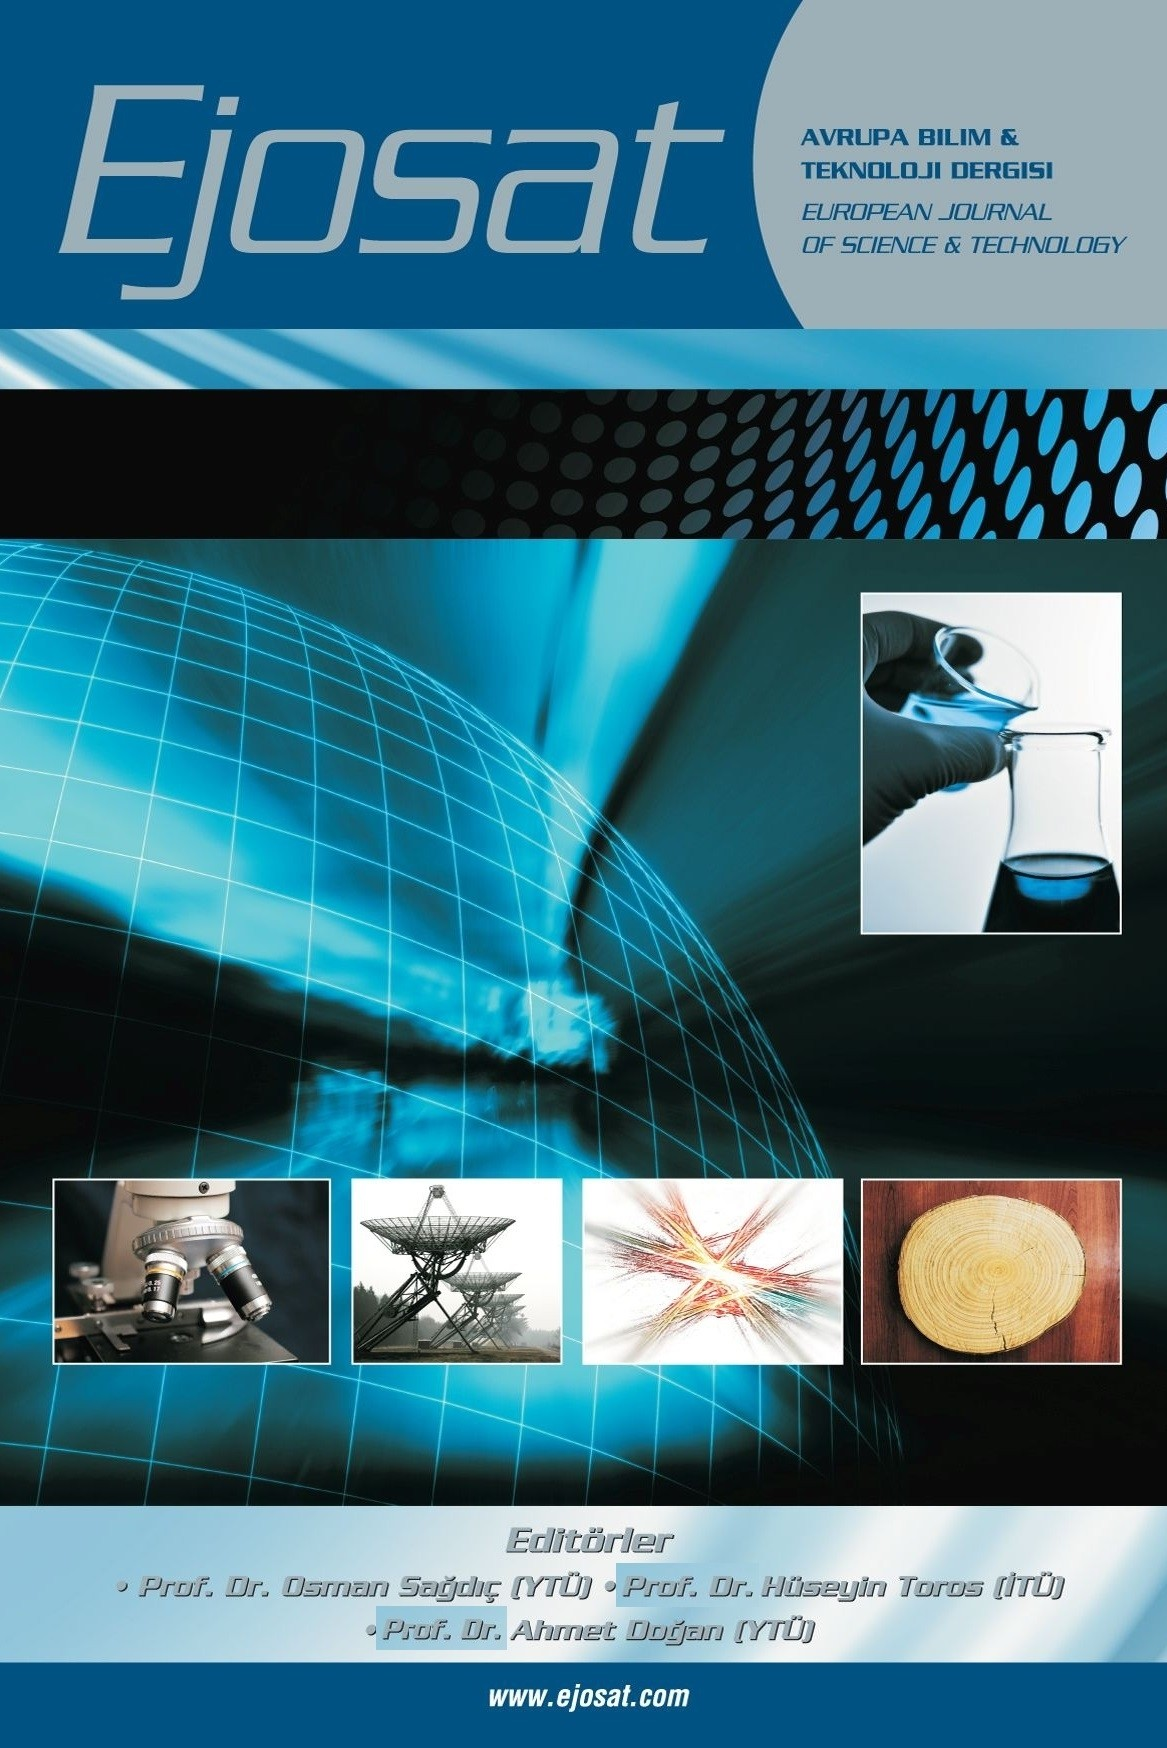 European Journal of Science and Technology